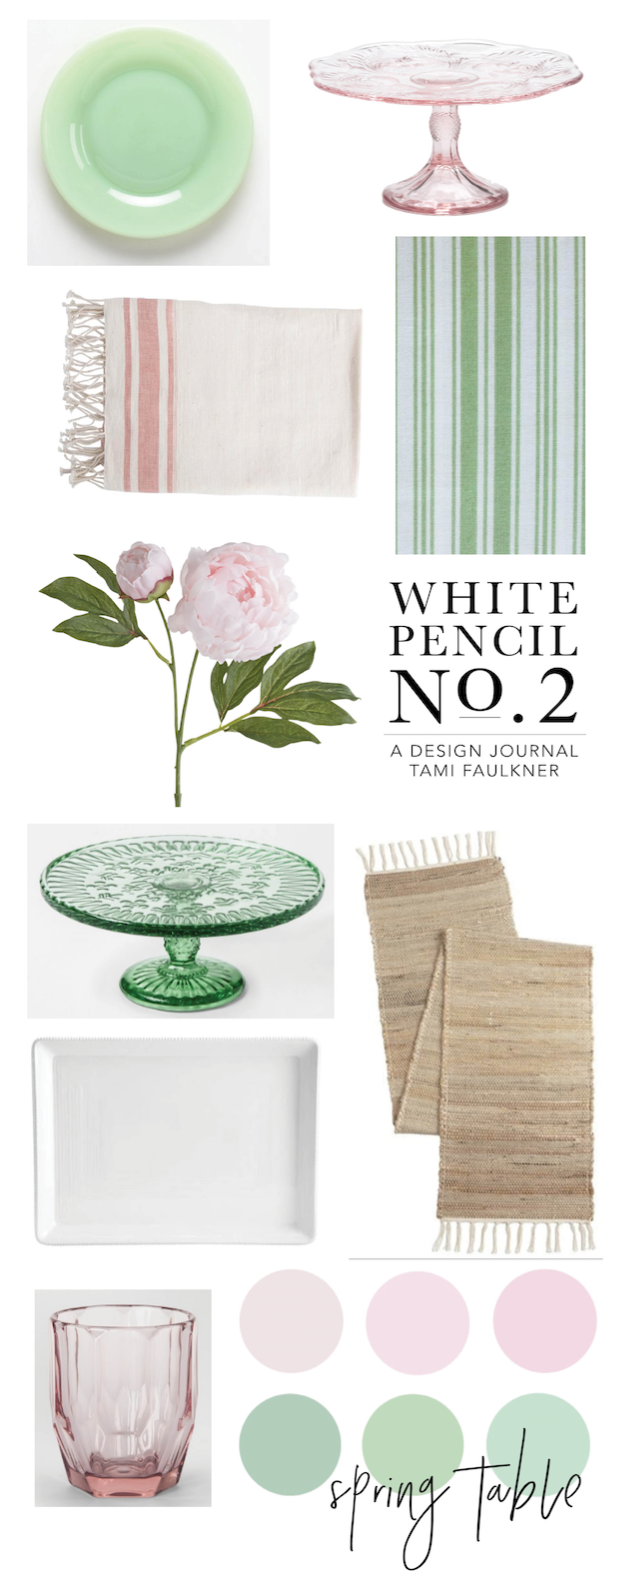 tami faulkner design spring table